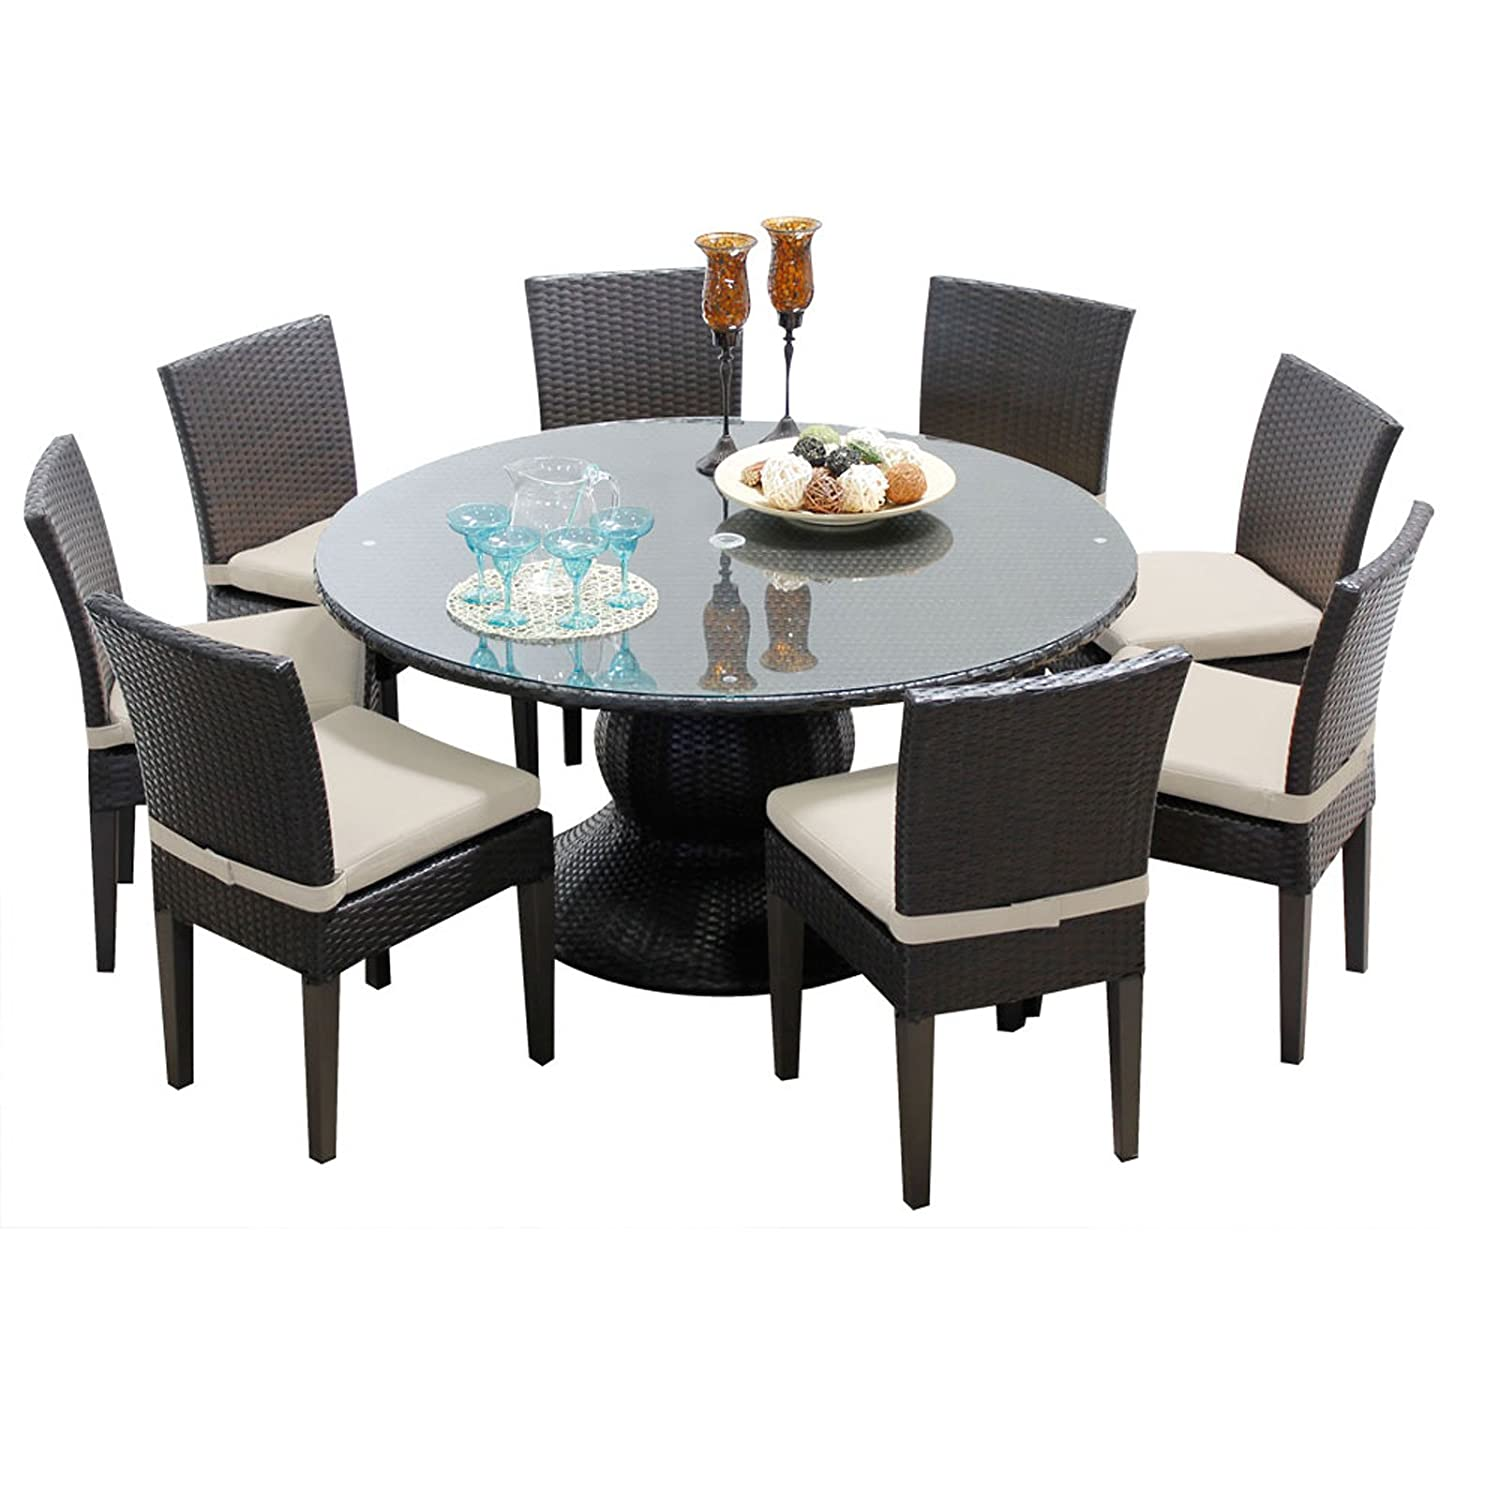 TK Classics BARBADOS-60-KIT-8C-BEIGE Barbados 60 Inch Table with 8 Armless Chairs Outdoor Wicker Patio Dining Sets, Beige